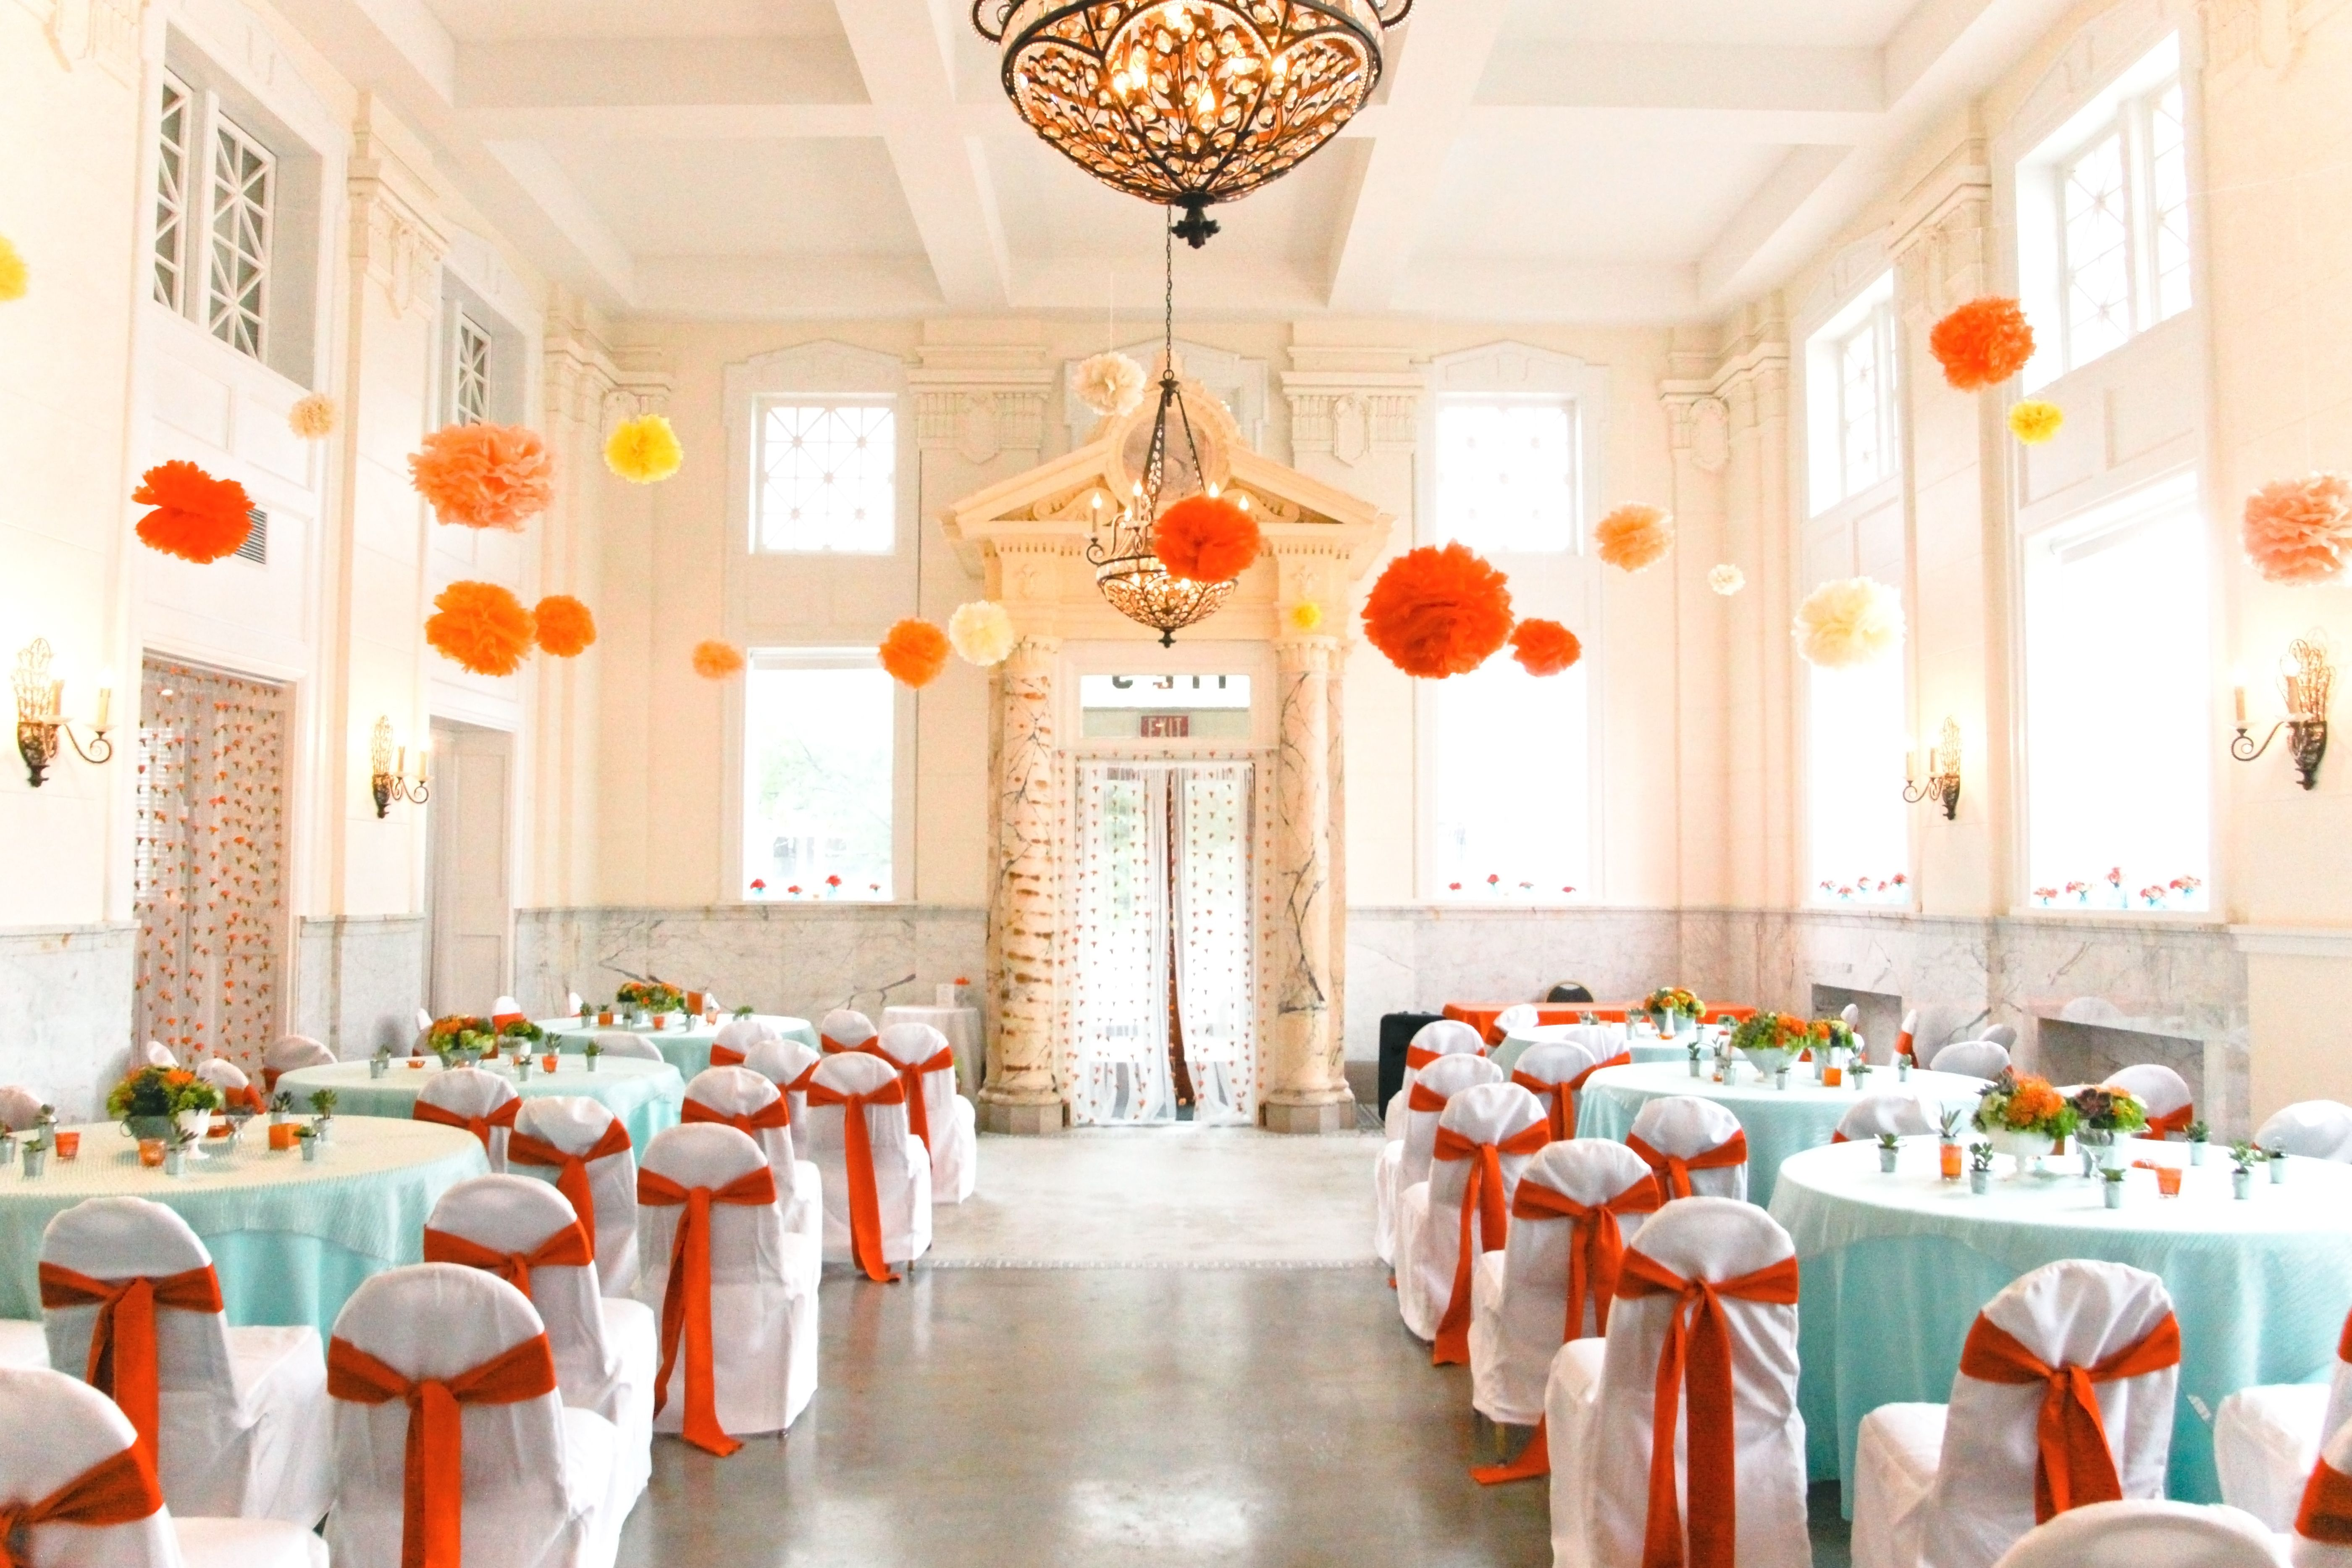 wedding reception venues cost%0A The Bankuet Place Weddings  Price out and compare wedding costs for wedding  ceremony and reception venues in Richmond  VA